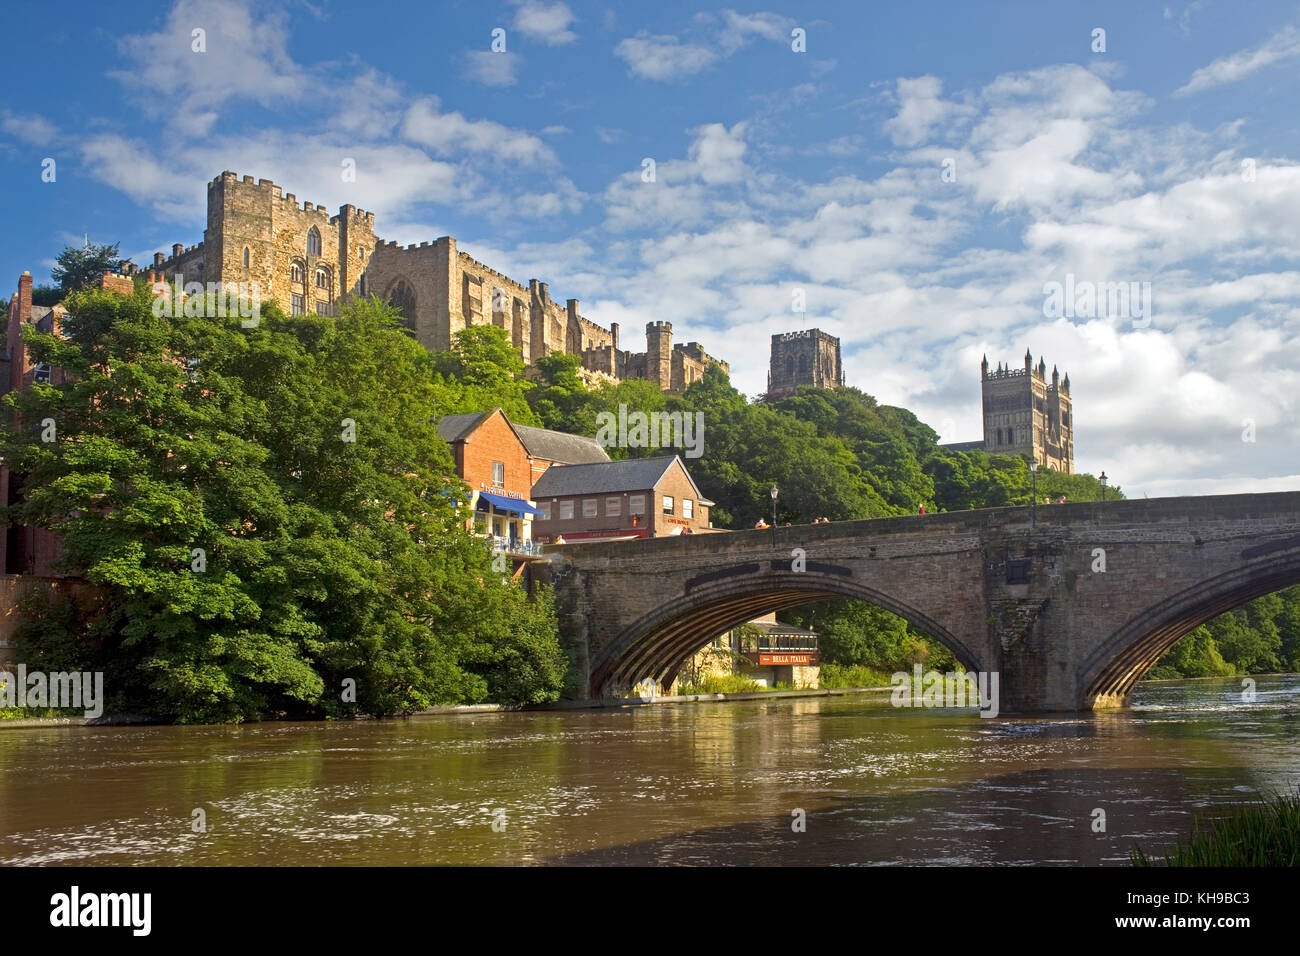 durham-castle-and-cathedral-river-wear-t